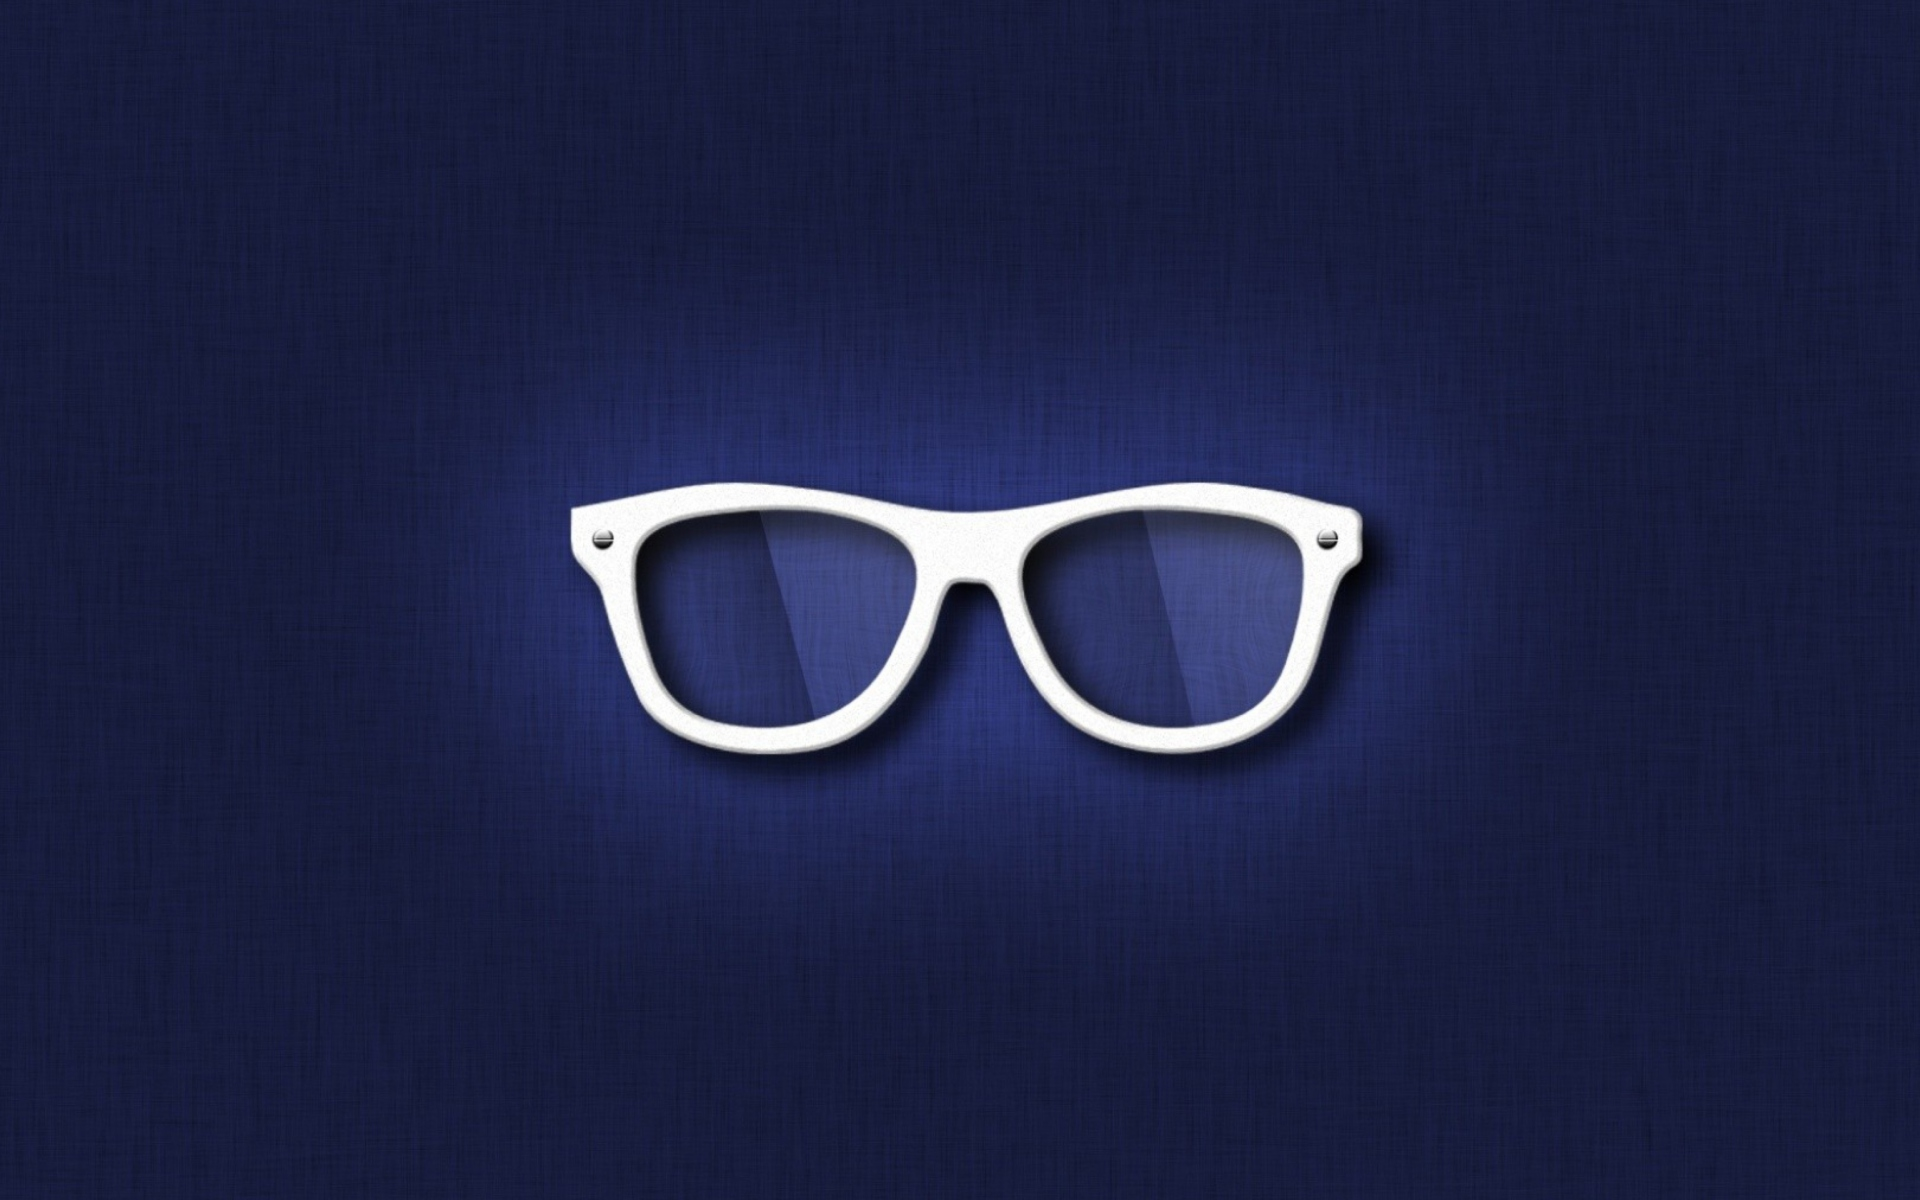 Hipster glasses illustration fondos de pantalla gratis for Fondos de pantalla hd gratis para pc